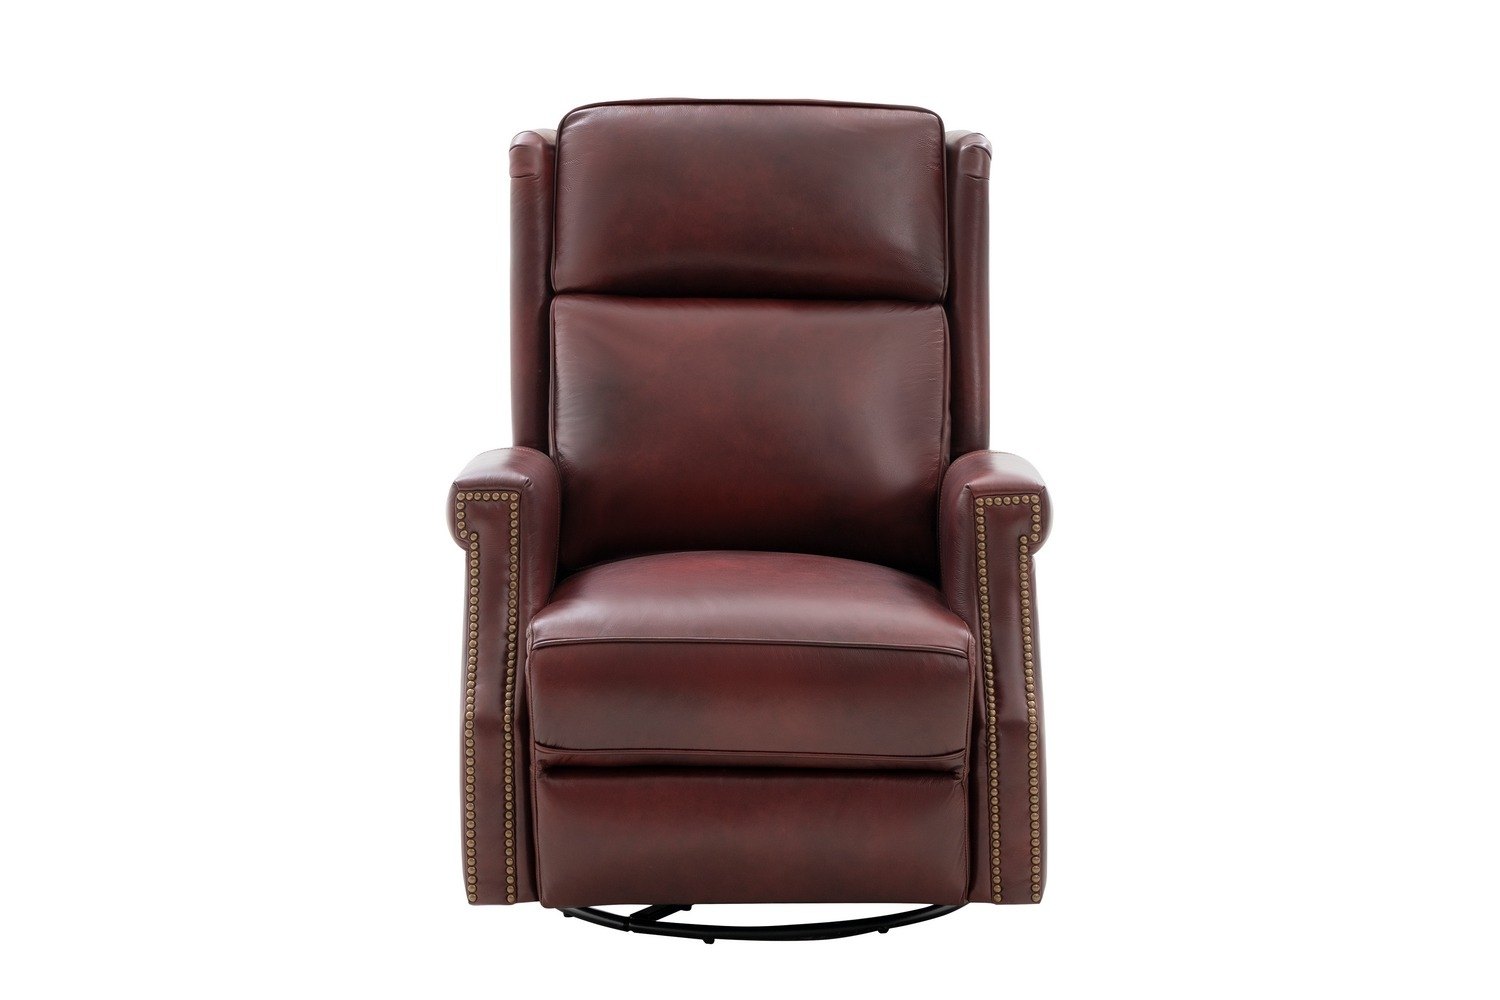 Barcalounger Brookmore Swivel Glider Recliner Chair with Power Recline and Power Head Rest - Emerson Sangria/Top Grain Leather